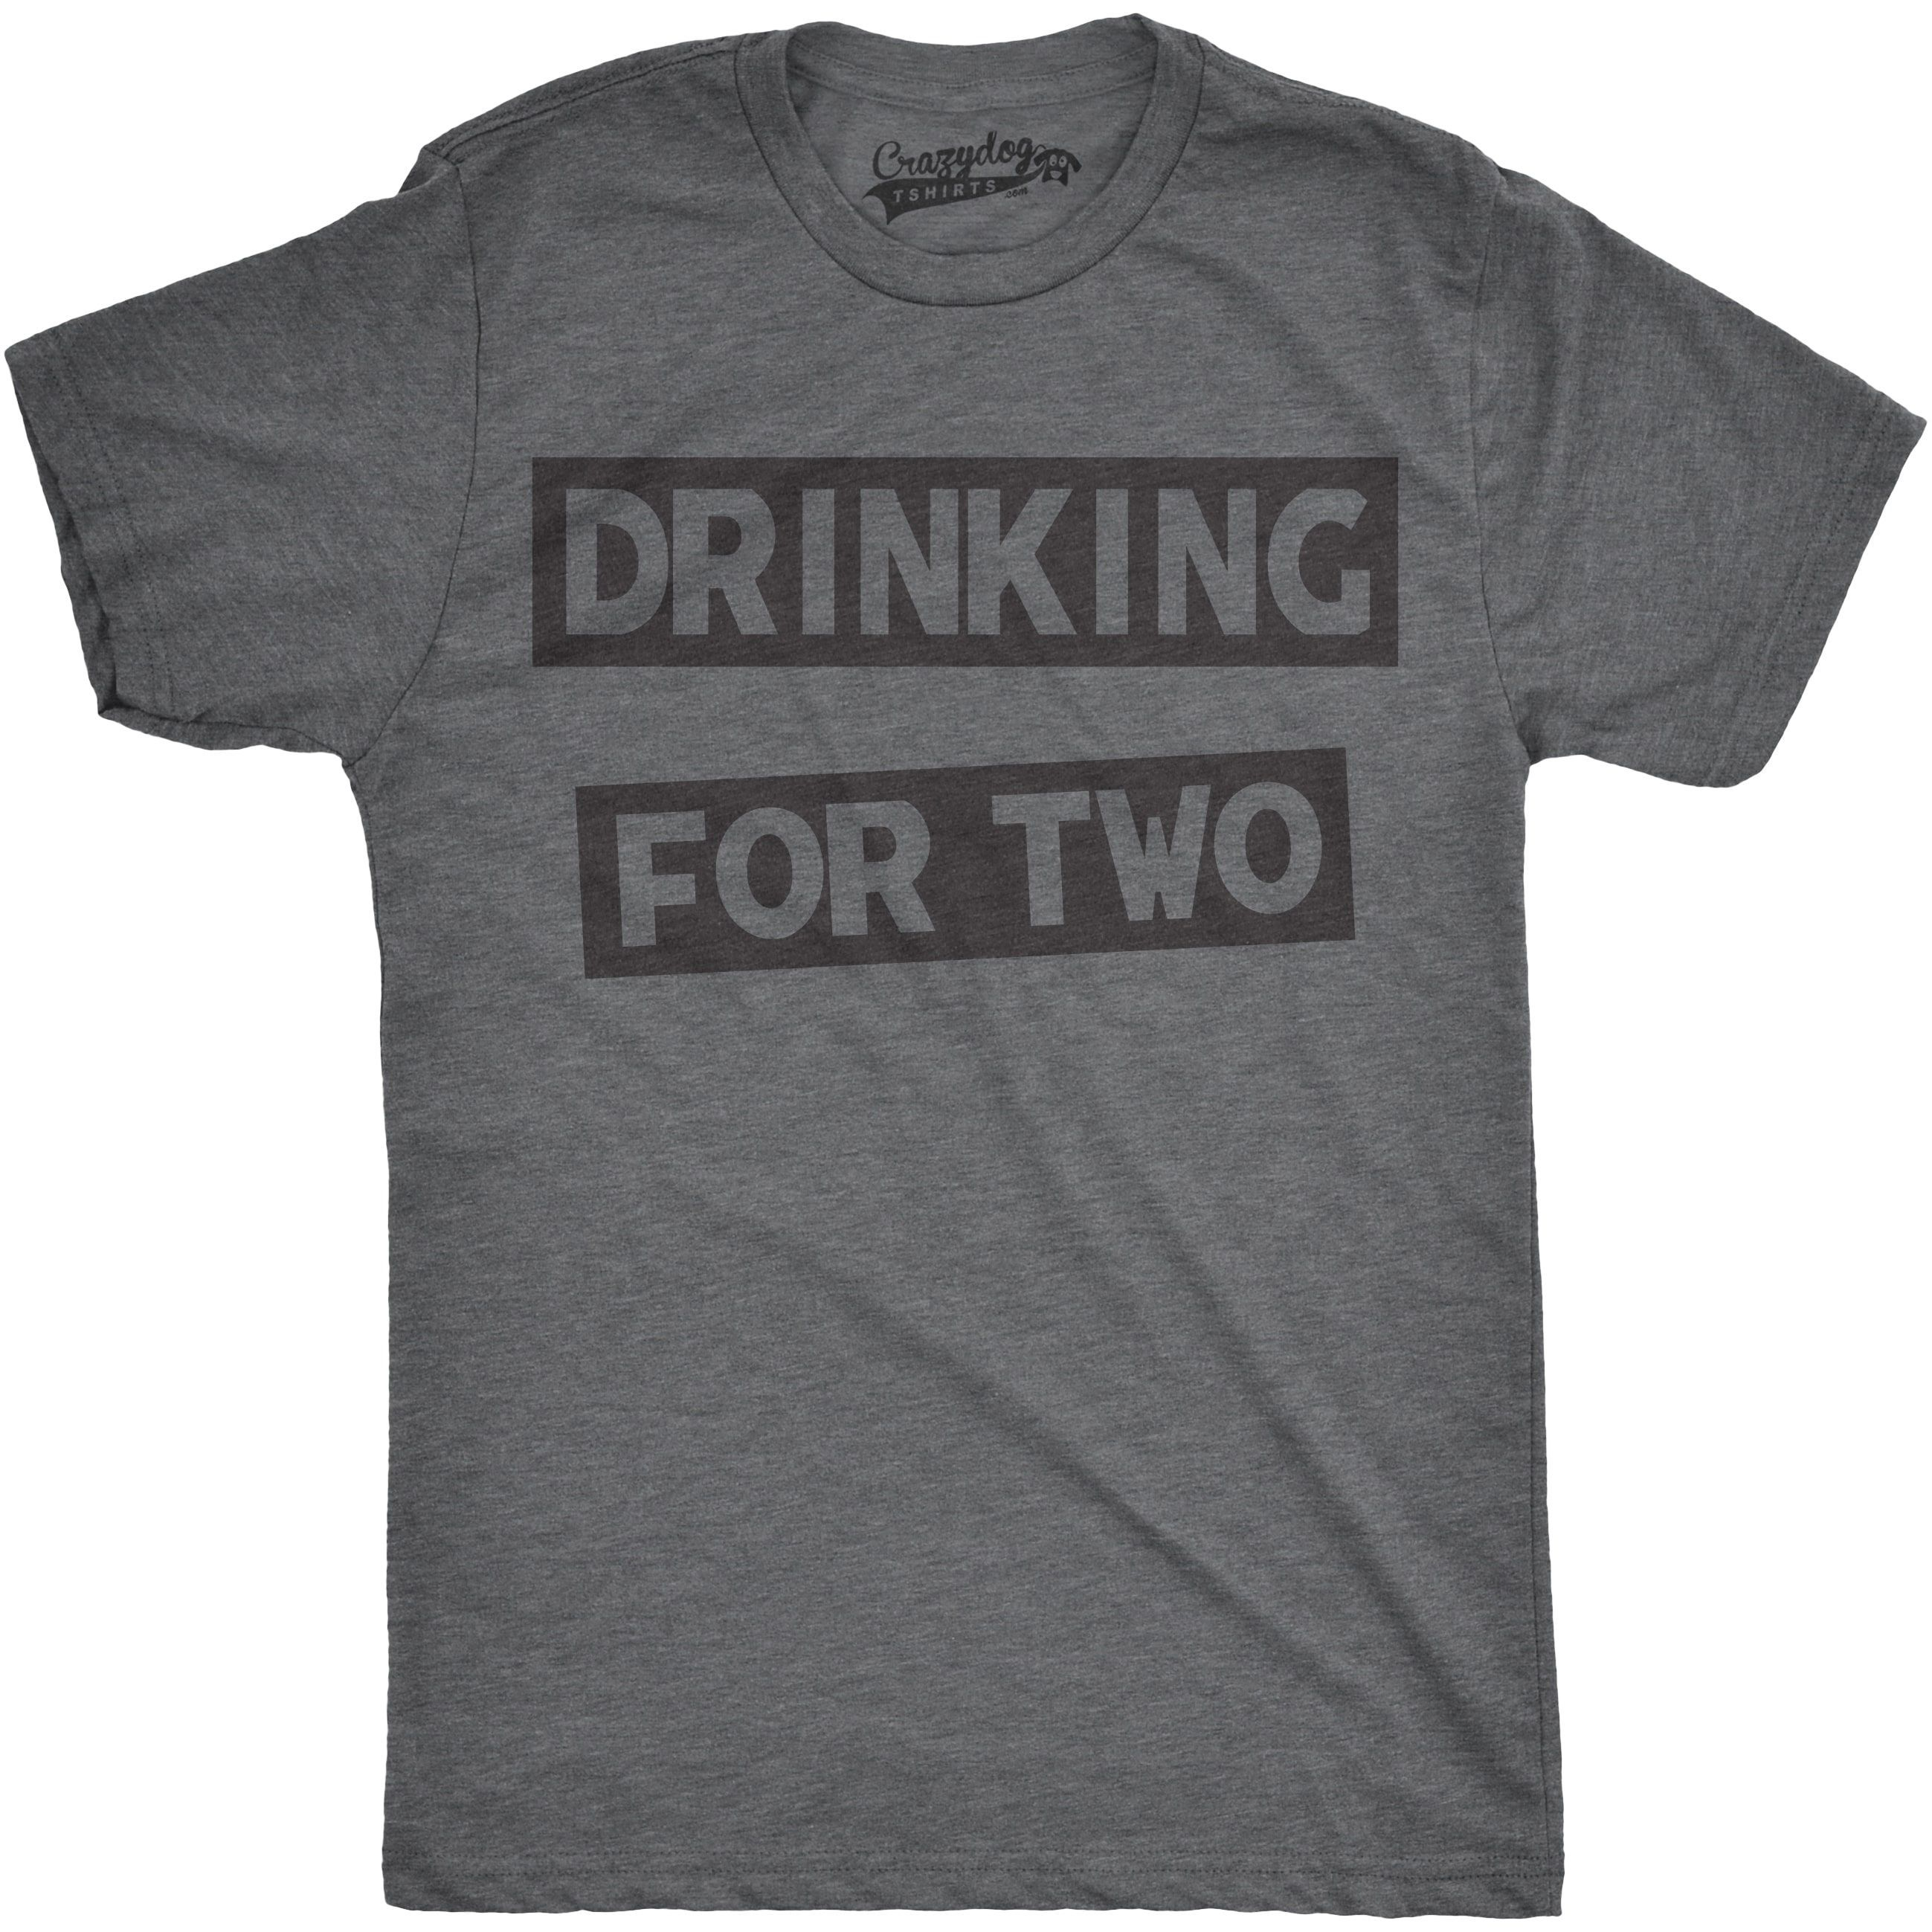 Mens Drinking For Two Funny Partying Tee Beer T Shirt L Grey Crazy Dog Shirts Cotton Graphic